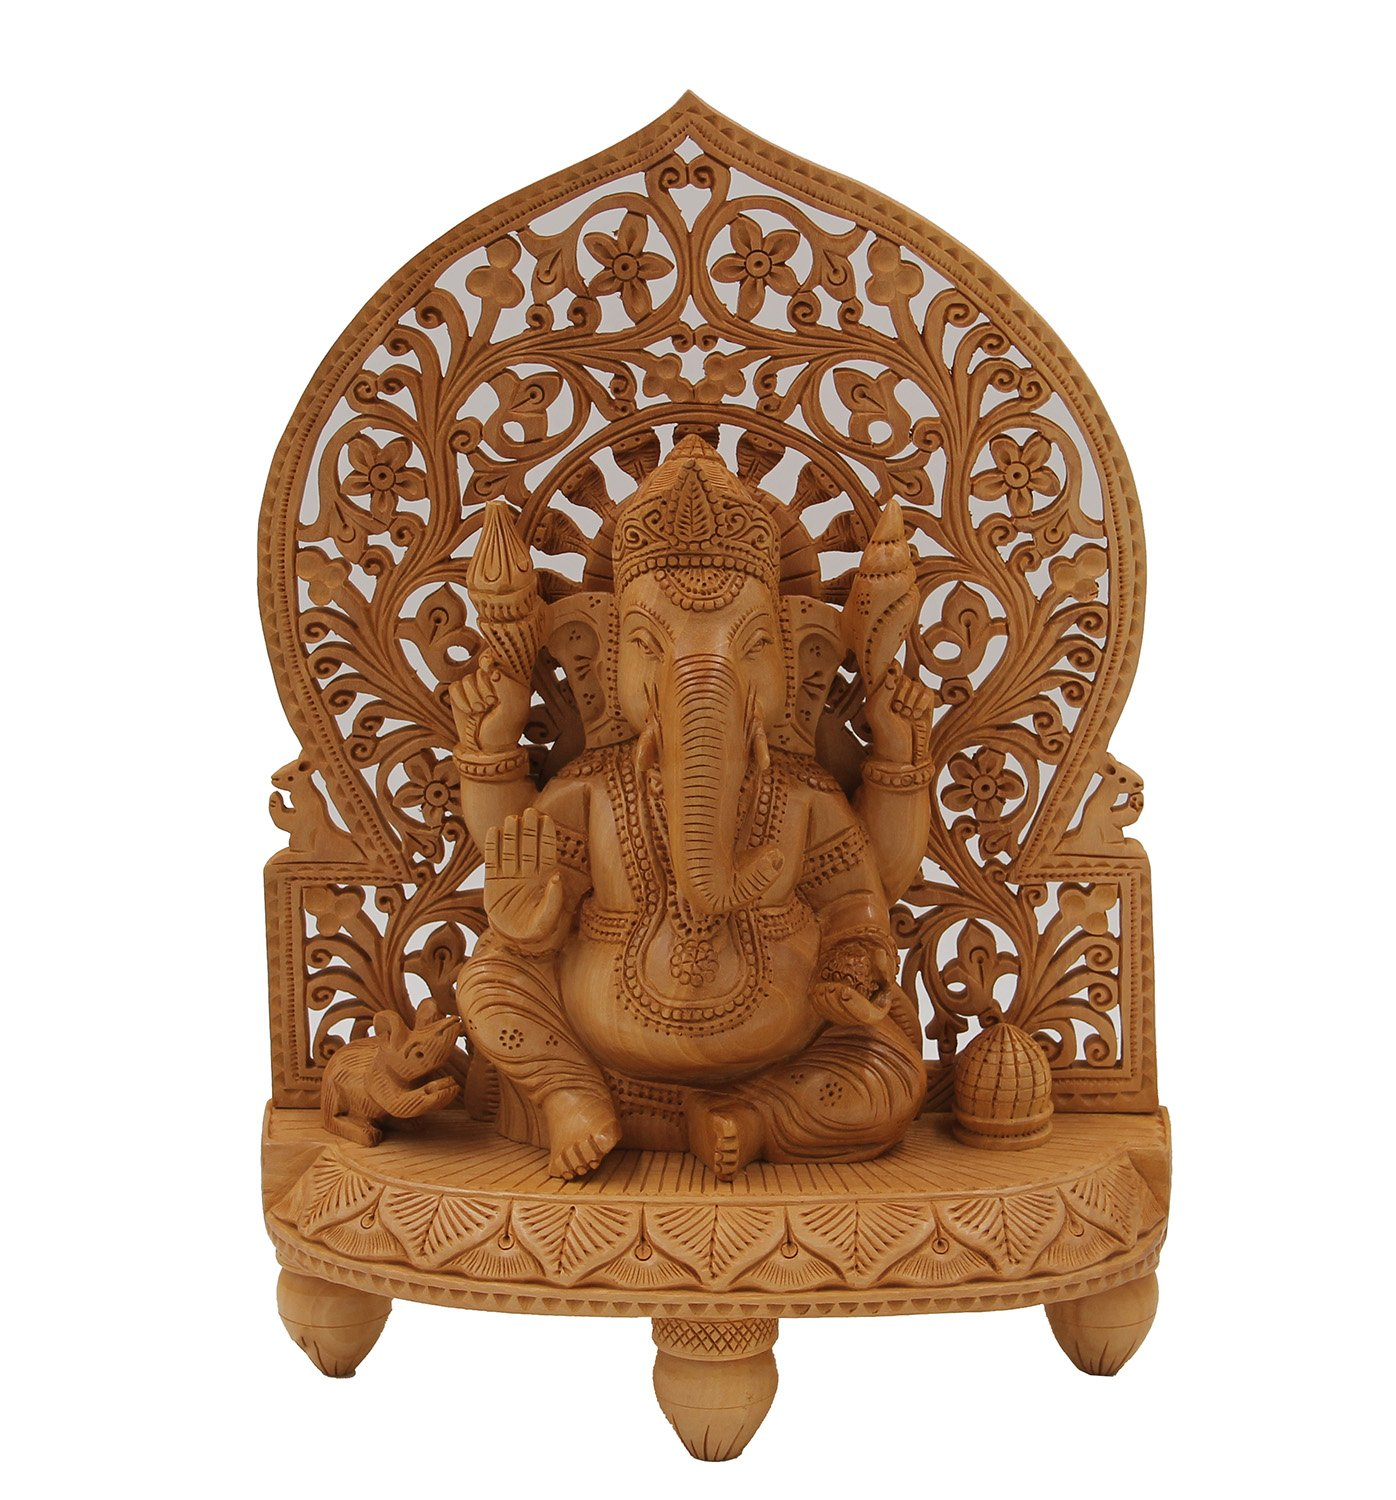 "DharmaObjects Large Ganesha Hand Carved Wooden Statue - Ganesh Wooden Sculpture Elephant God Hindu Deity (12"" Tall X 8.5"" Wide, Ganesha)"